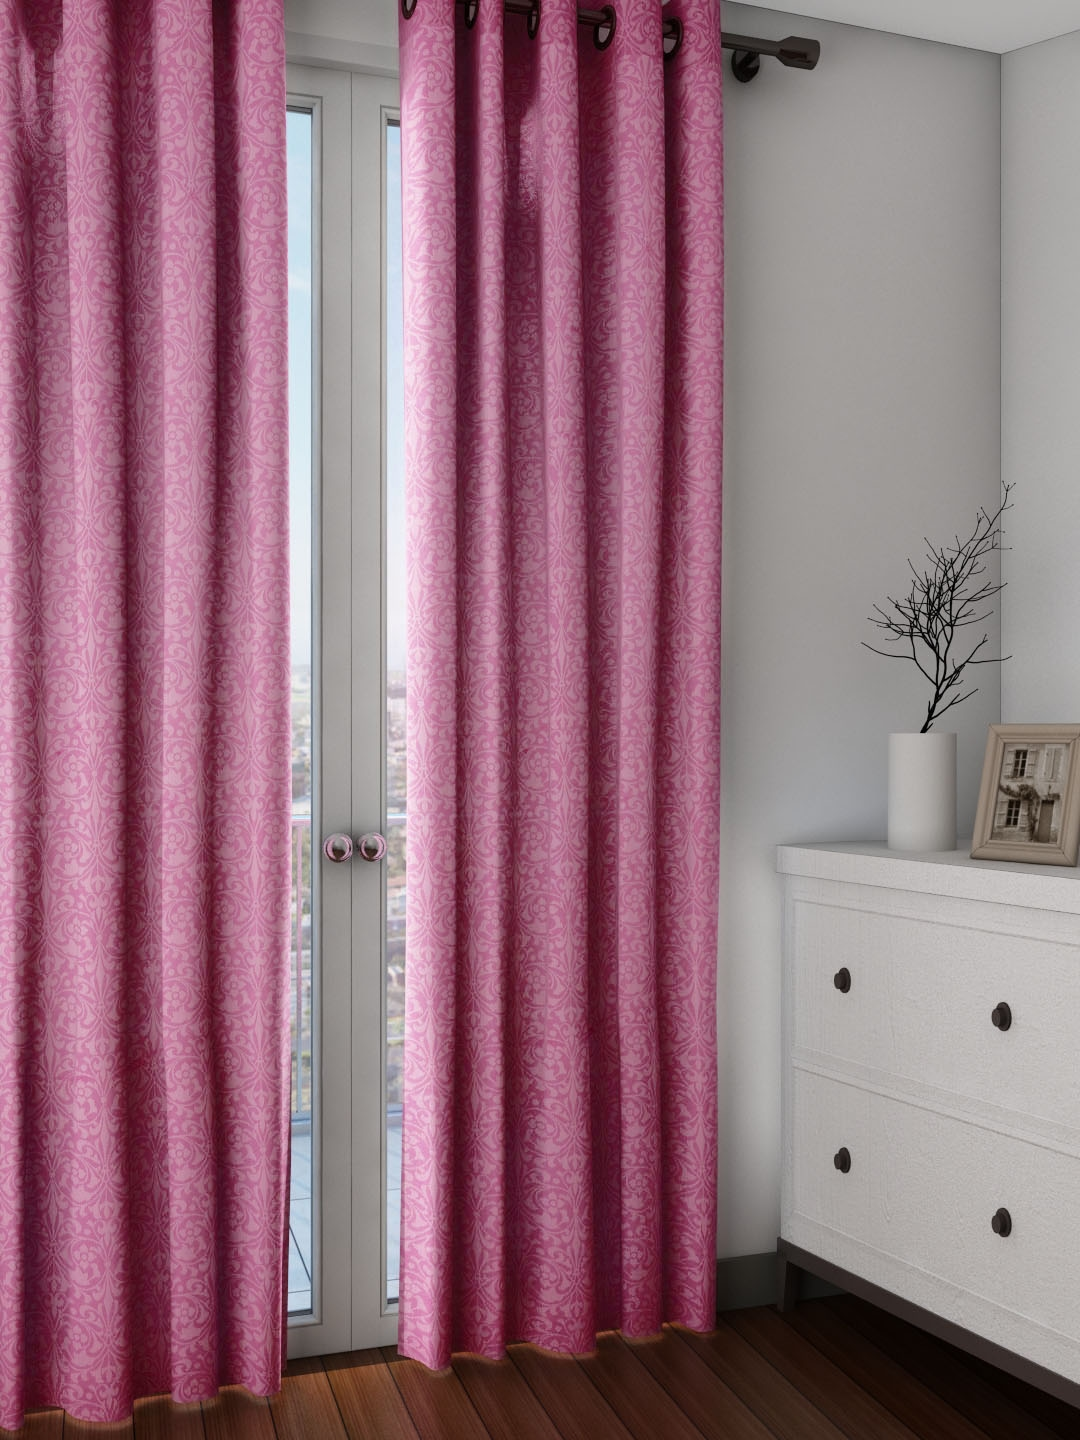 Long patterned curtains - Buy House This Purple Set Of 2 Patterned Regular Long Door Curtains Curtains And Sheers For Unisex Myntra